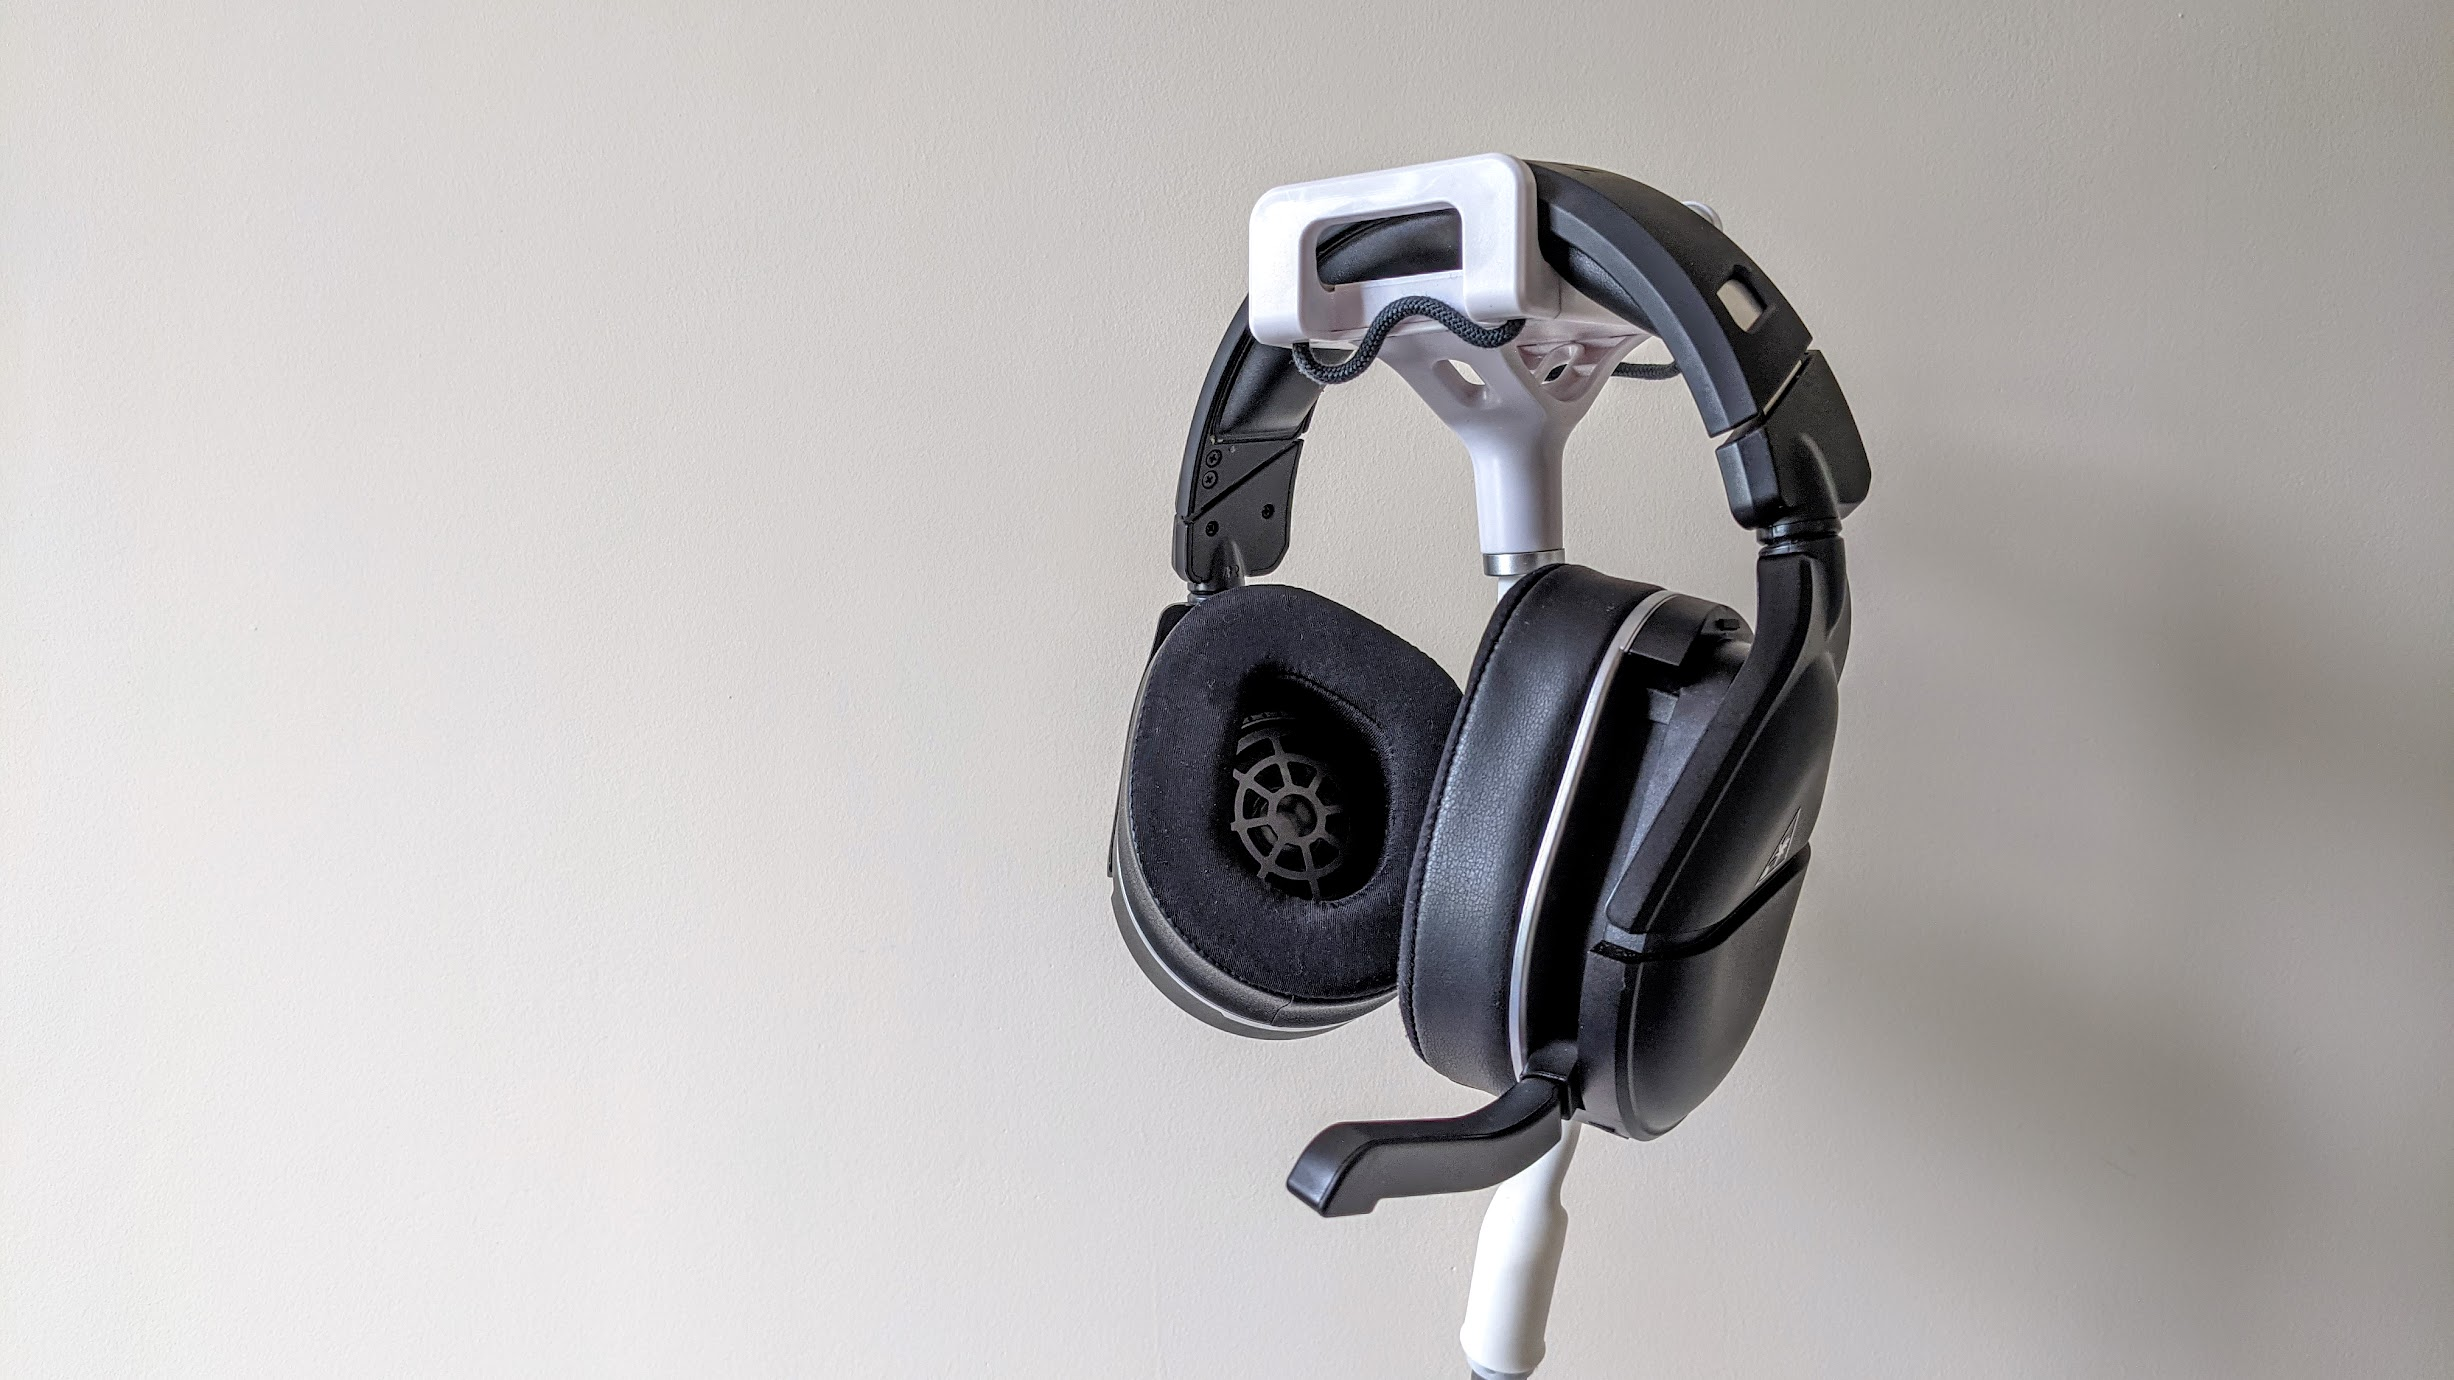 The Turtle Beach Stealth 700 Gen 2 sound is remarkable, for the price